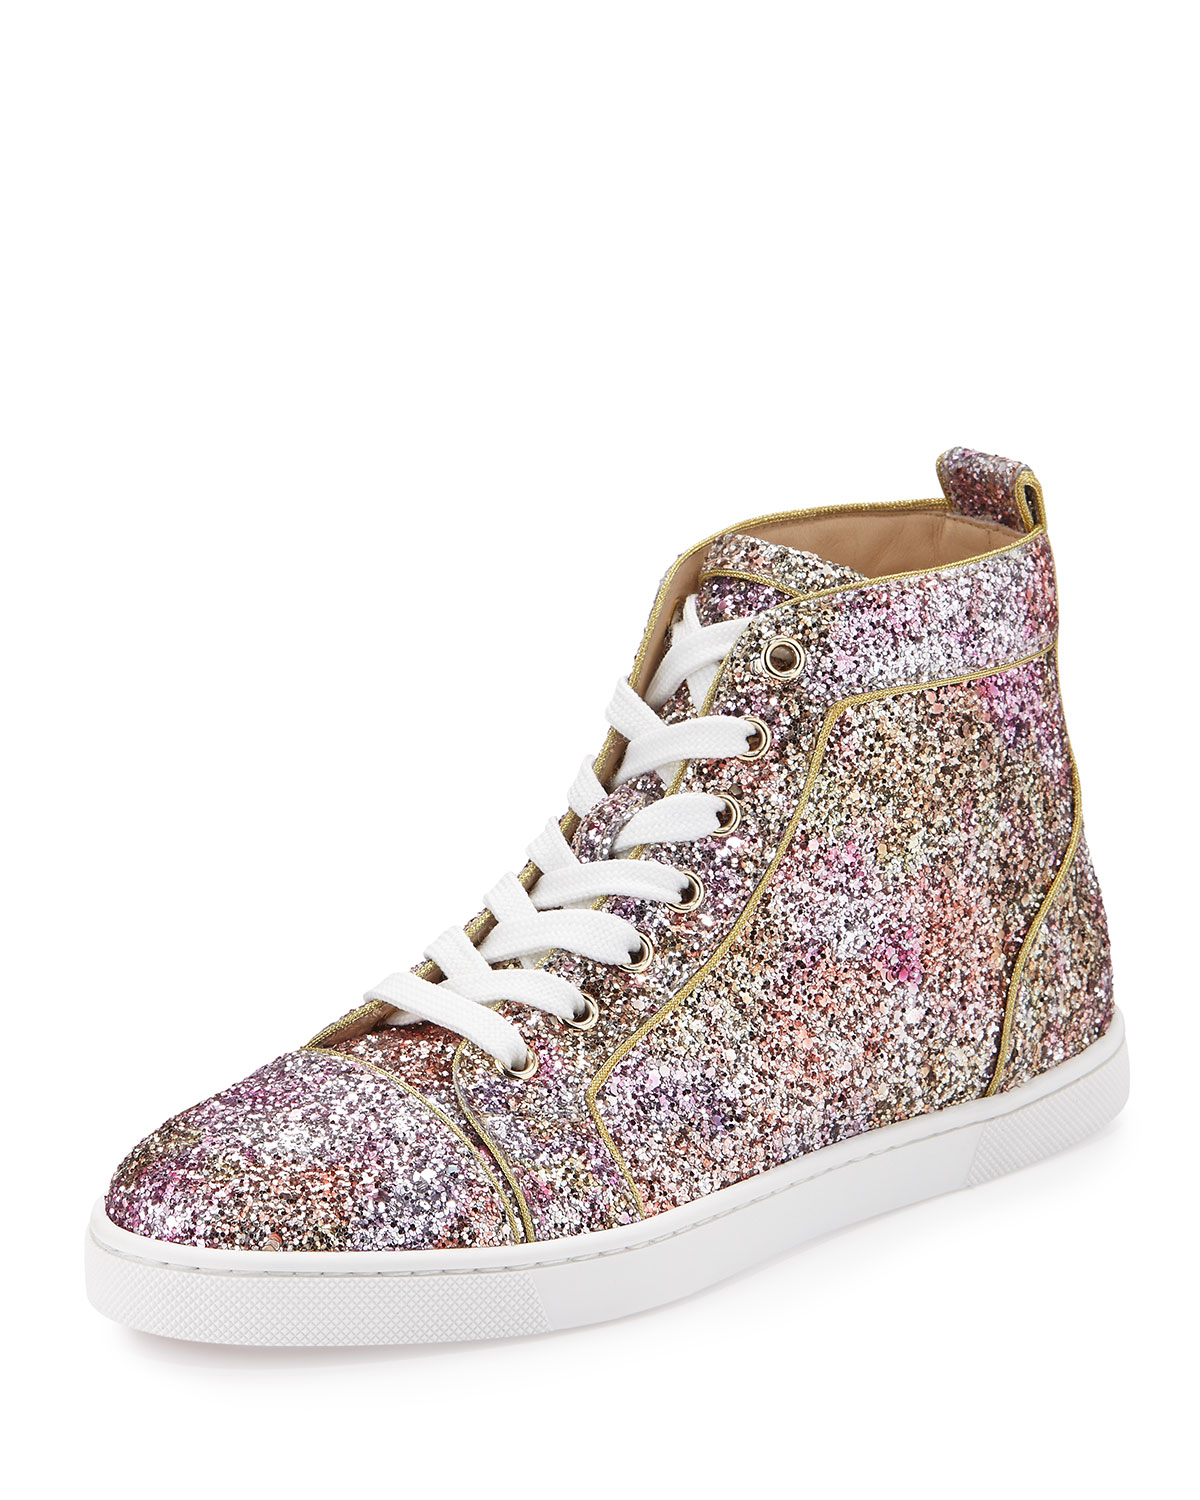 low priced b79c2 3de13 Bip Bip Glitter Aquarium High-Top Sneaker, Rosette